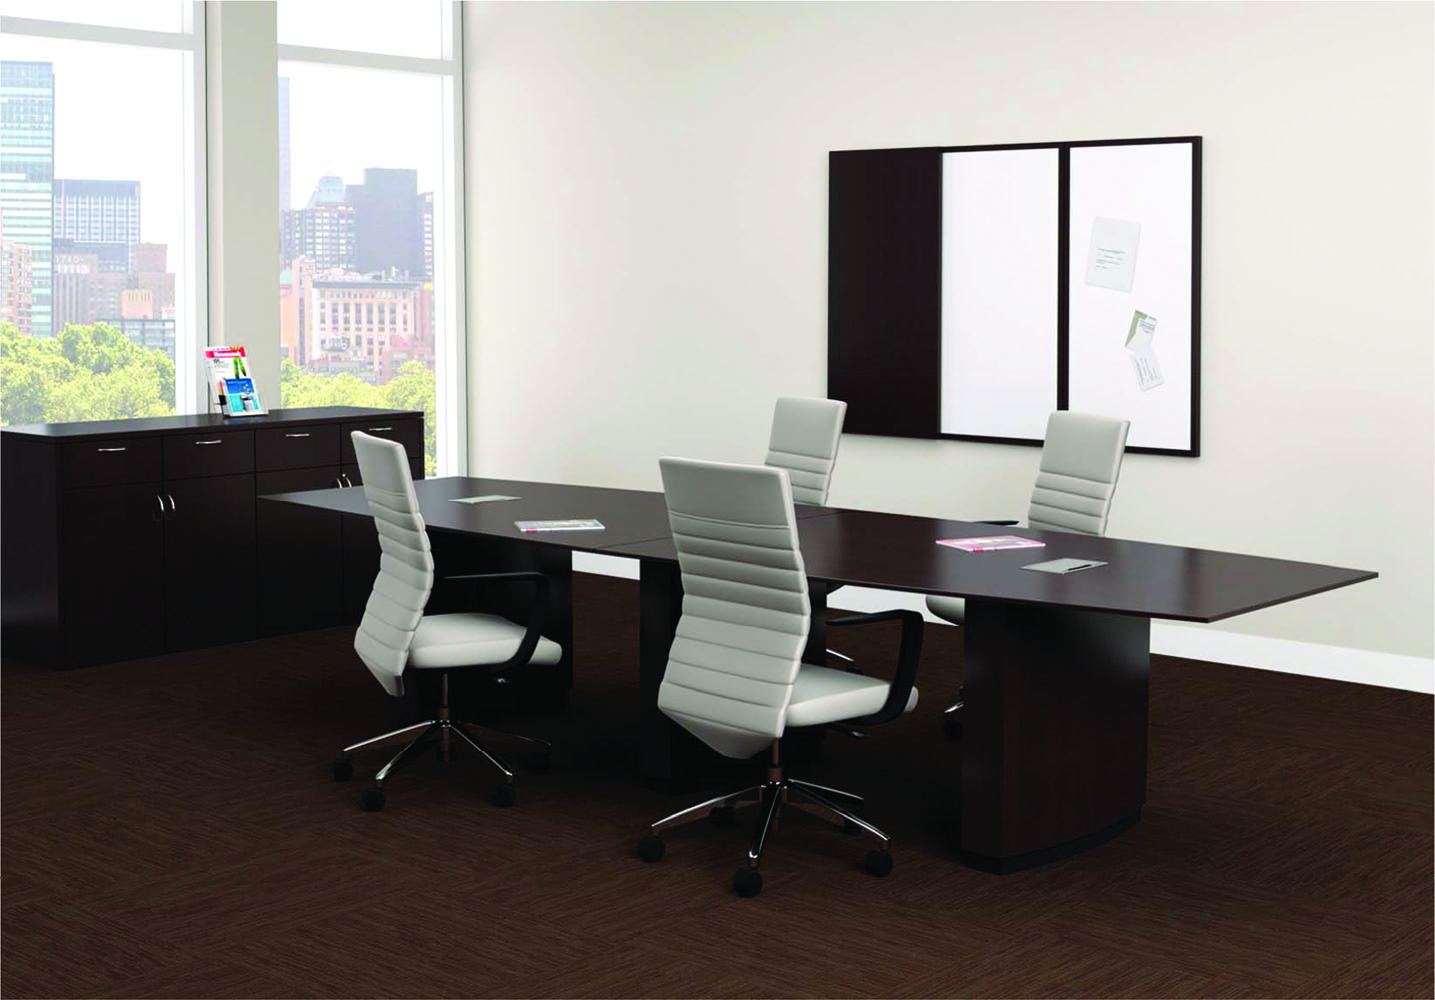 Boardroom Setup Meeting Room Furniture Office